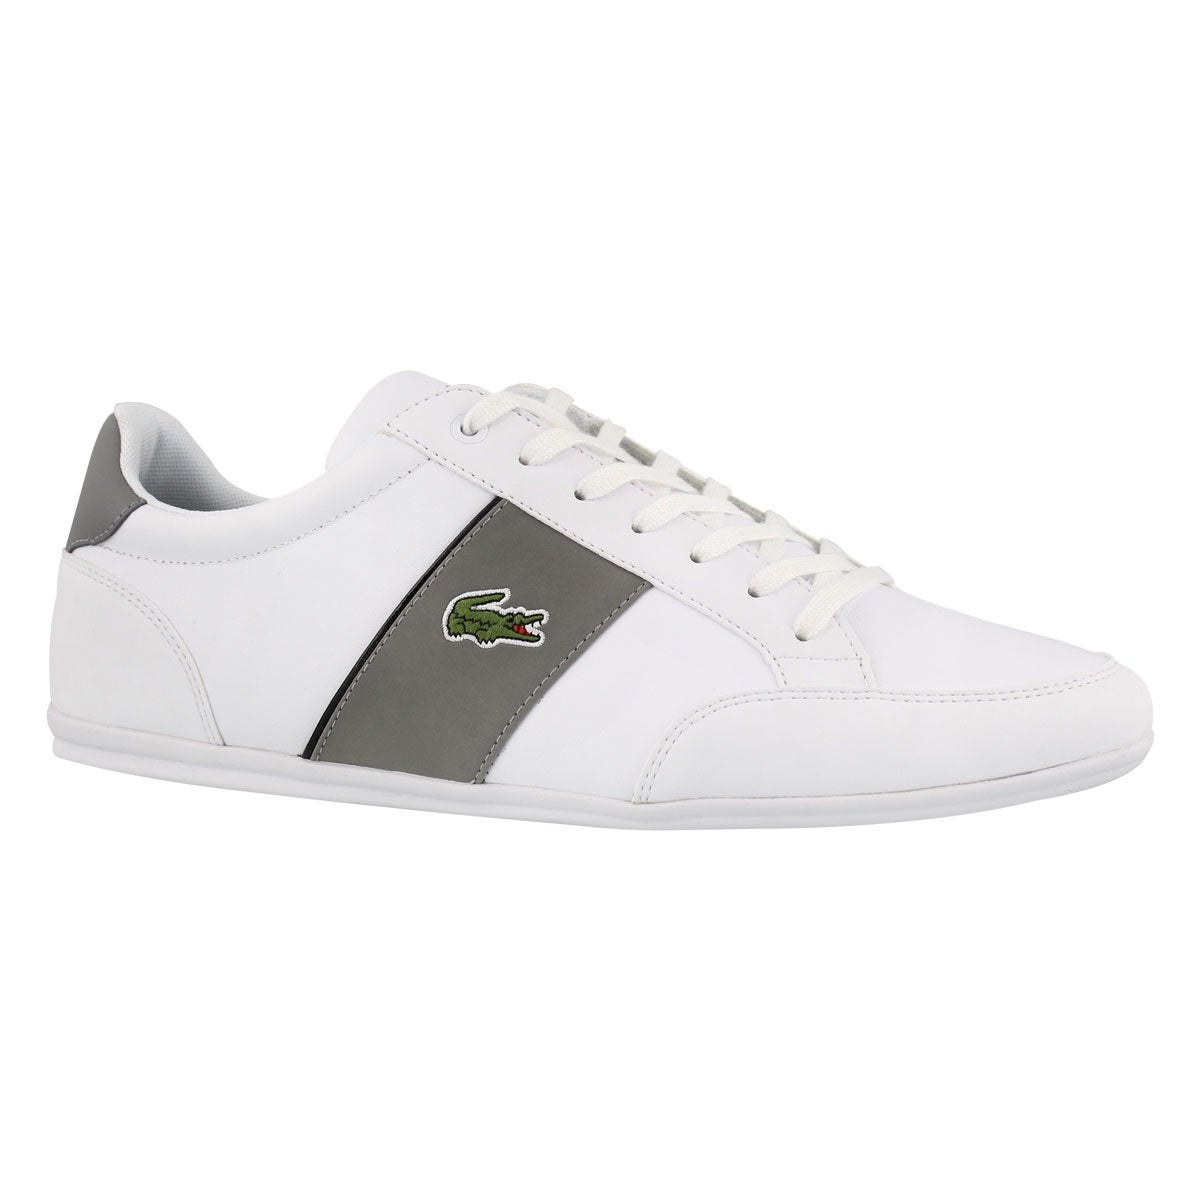 Men's NIVOLOR 118 1 P white/grey sneaker